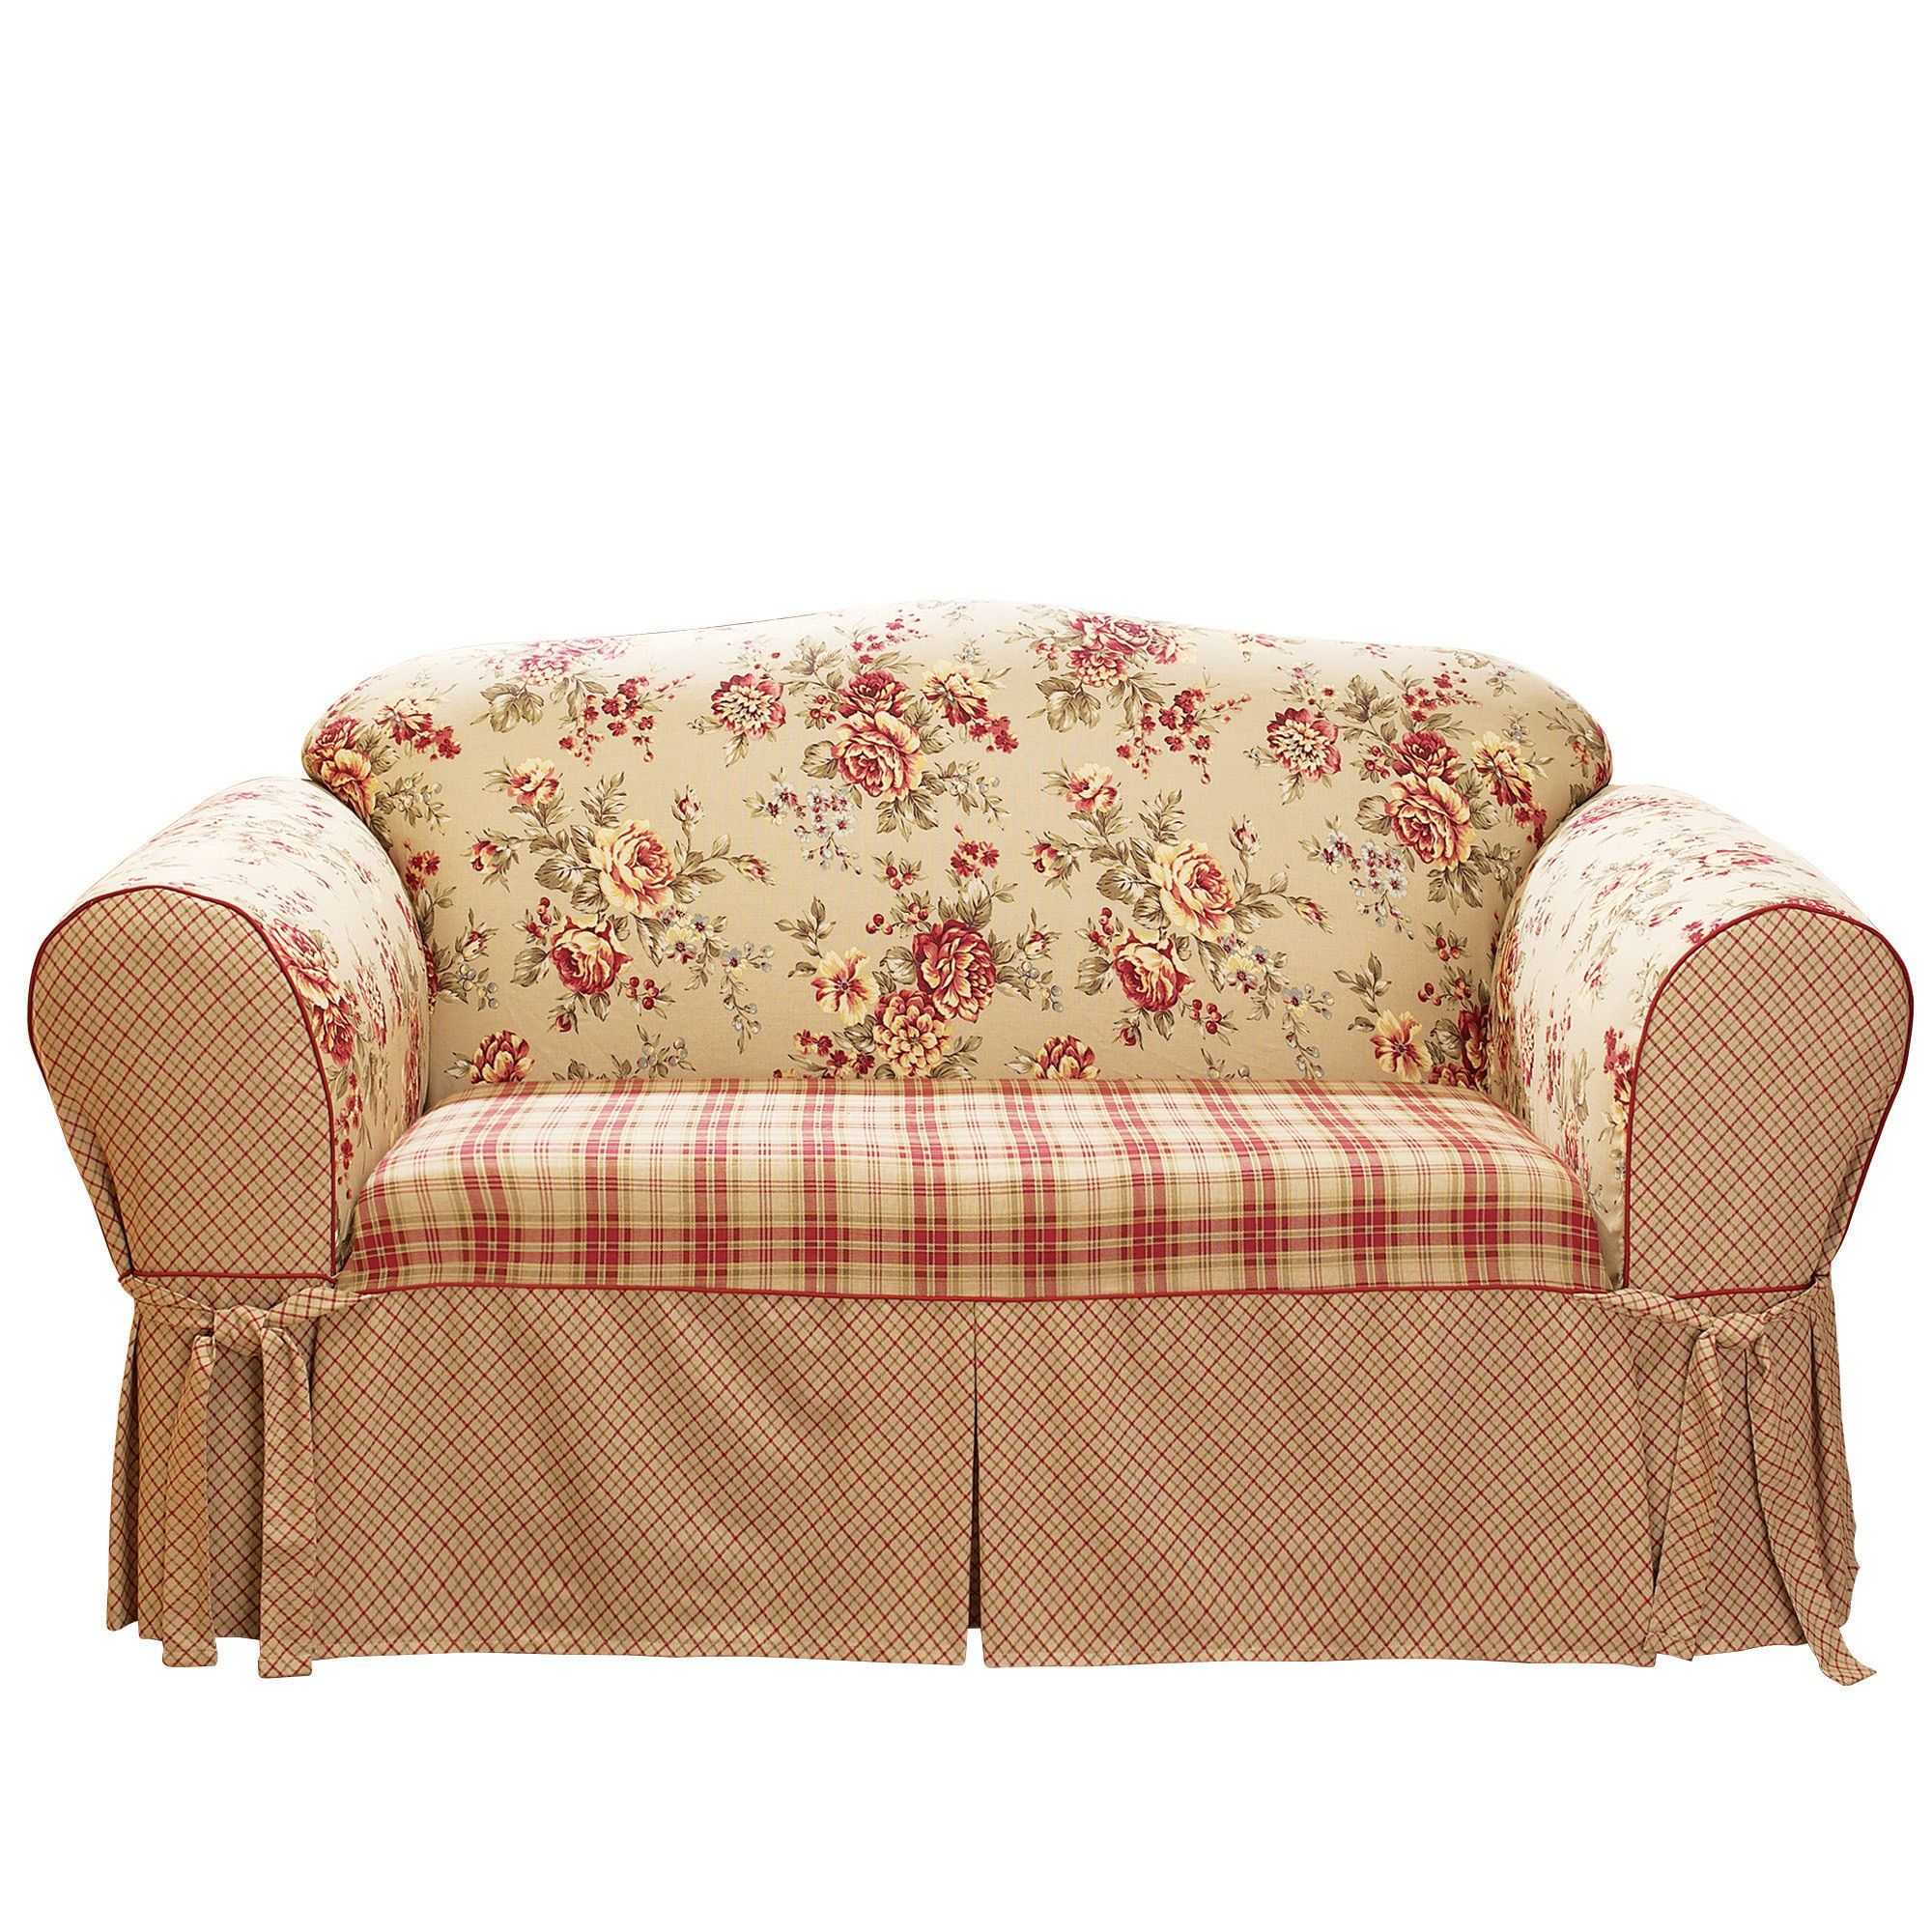 Loveseat Slipcover Sure Fit Red Slipcovers for chairs